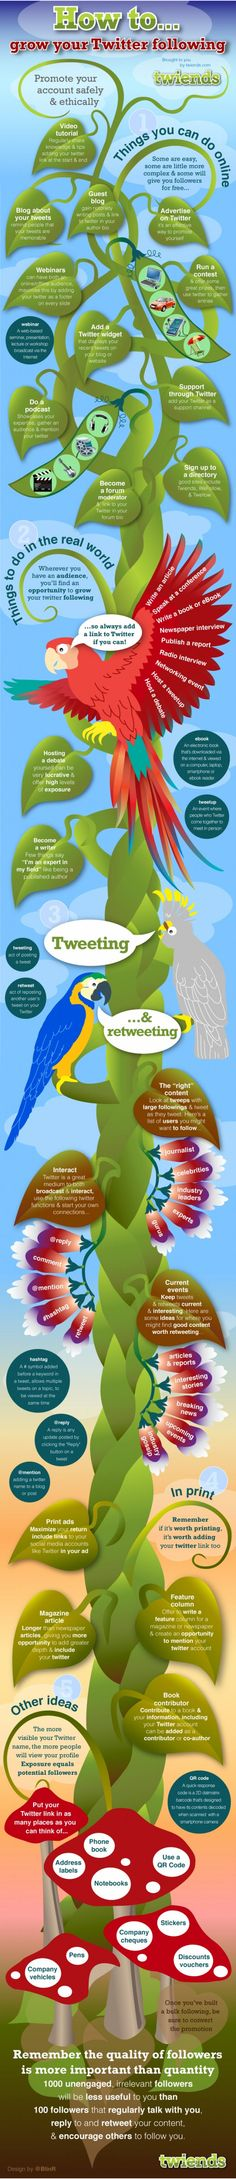 40 ways to increase your Twitter tribe More at http://www.jeffbullas.com/2013/03/26/40-ways-to-increase-your-twitter-followers-plus-infographic/#eMt2tcJLHVOtpC7I.99